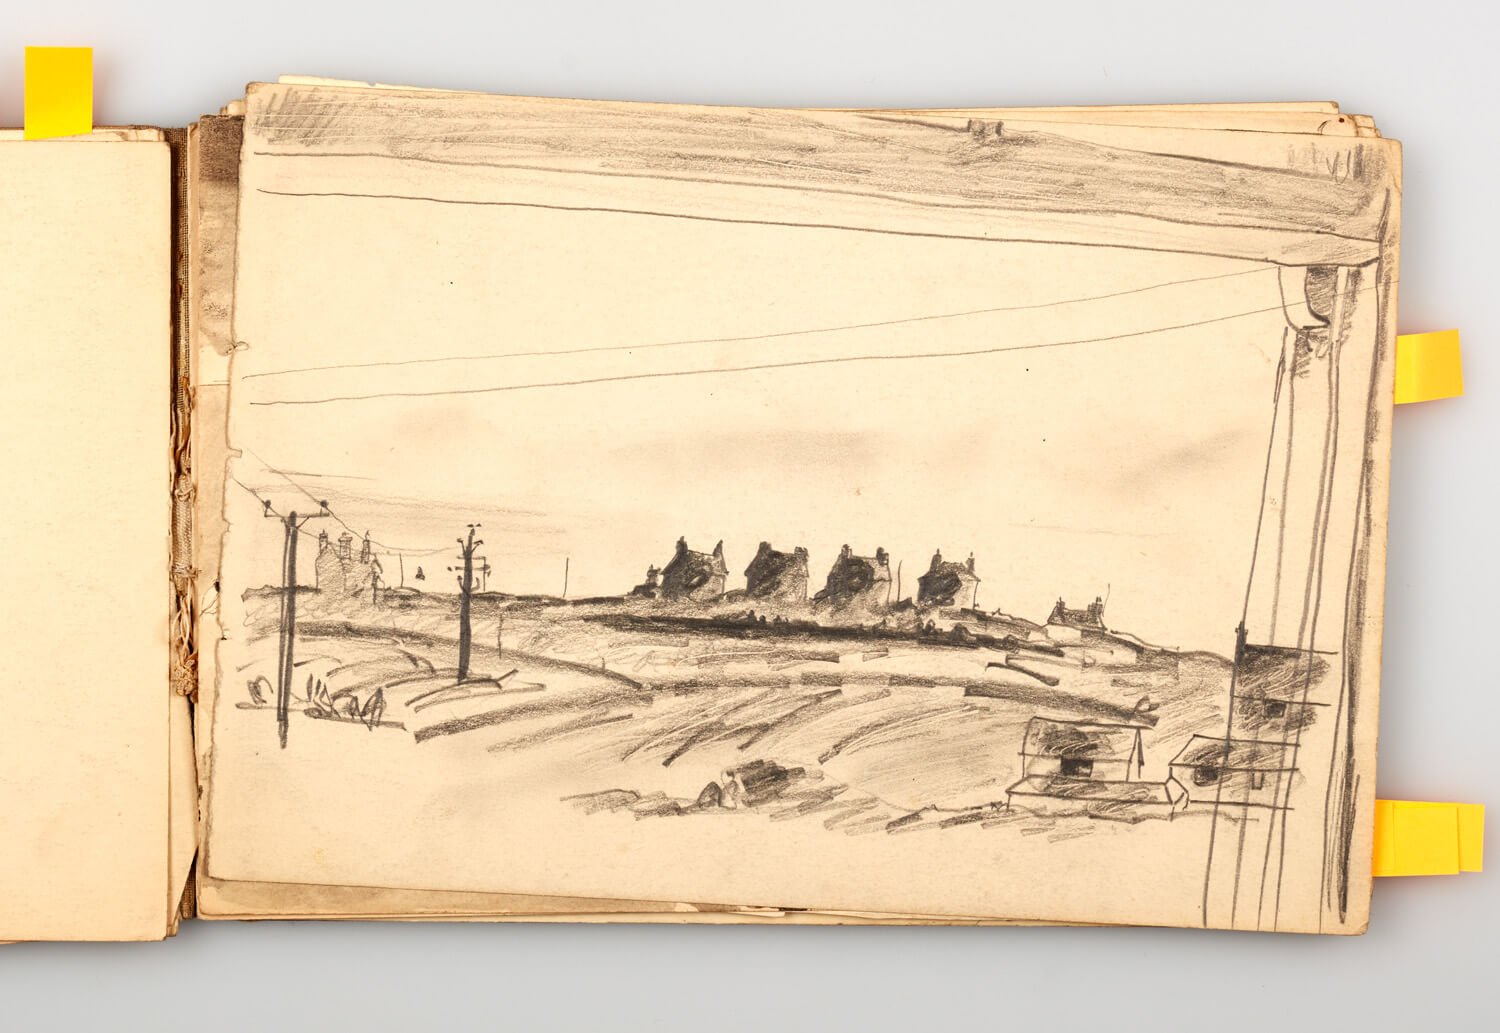 JB290 - Cornish Sketch Book 1948_49 - 1949 - 17.5 x 25.5 cm - Pencil